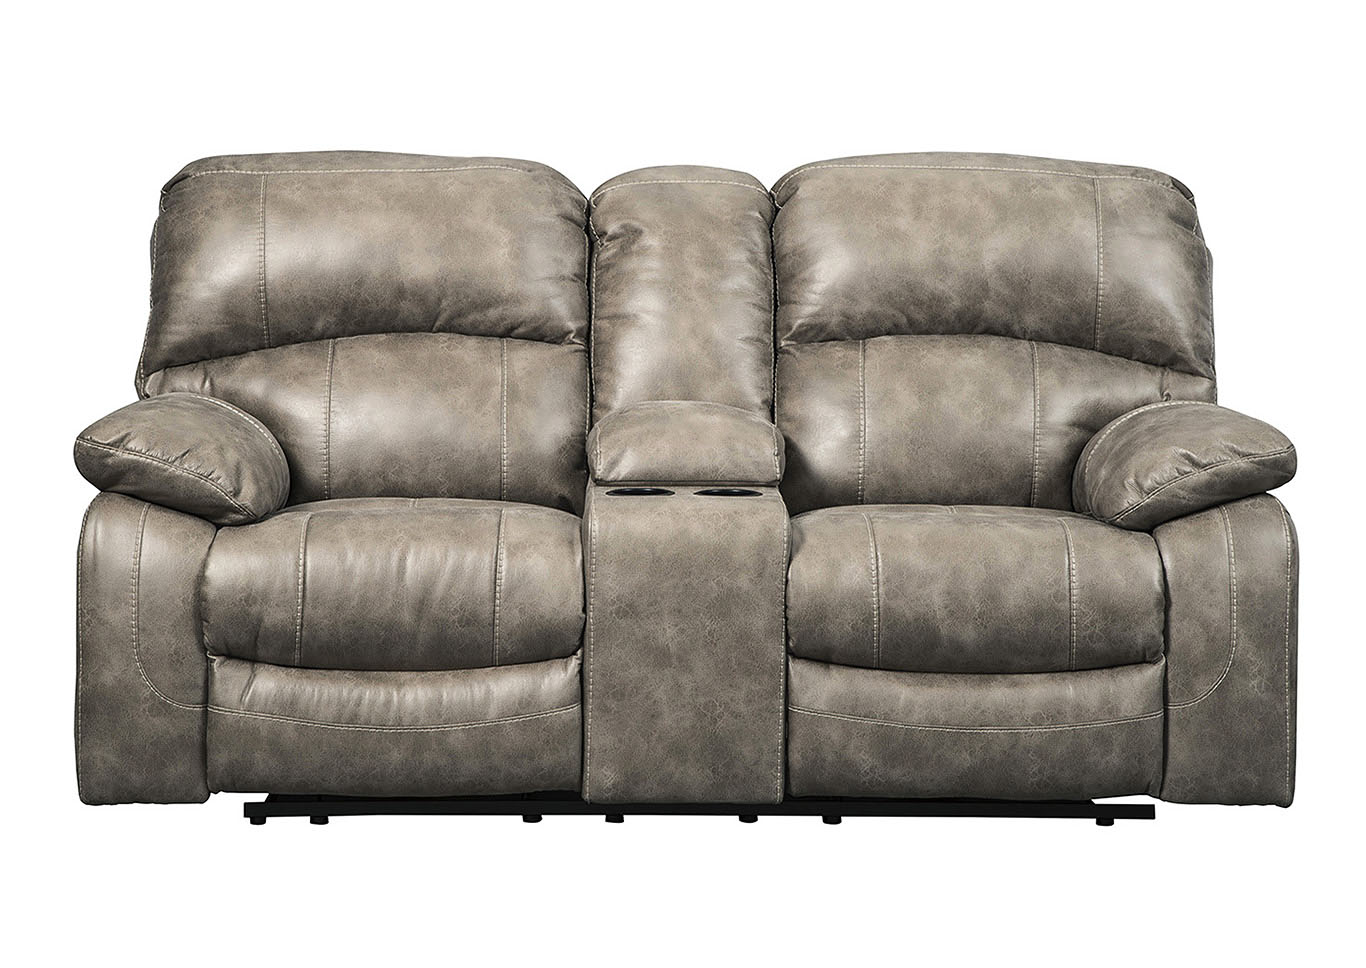 Dunwell Driftwood Power Recliner Loveseat w/Console and Adjustable Headrest,Signature Design By Ashley